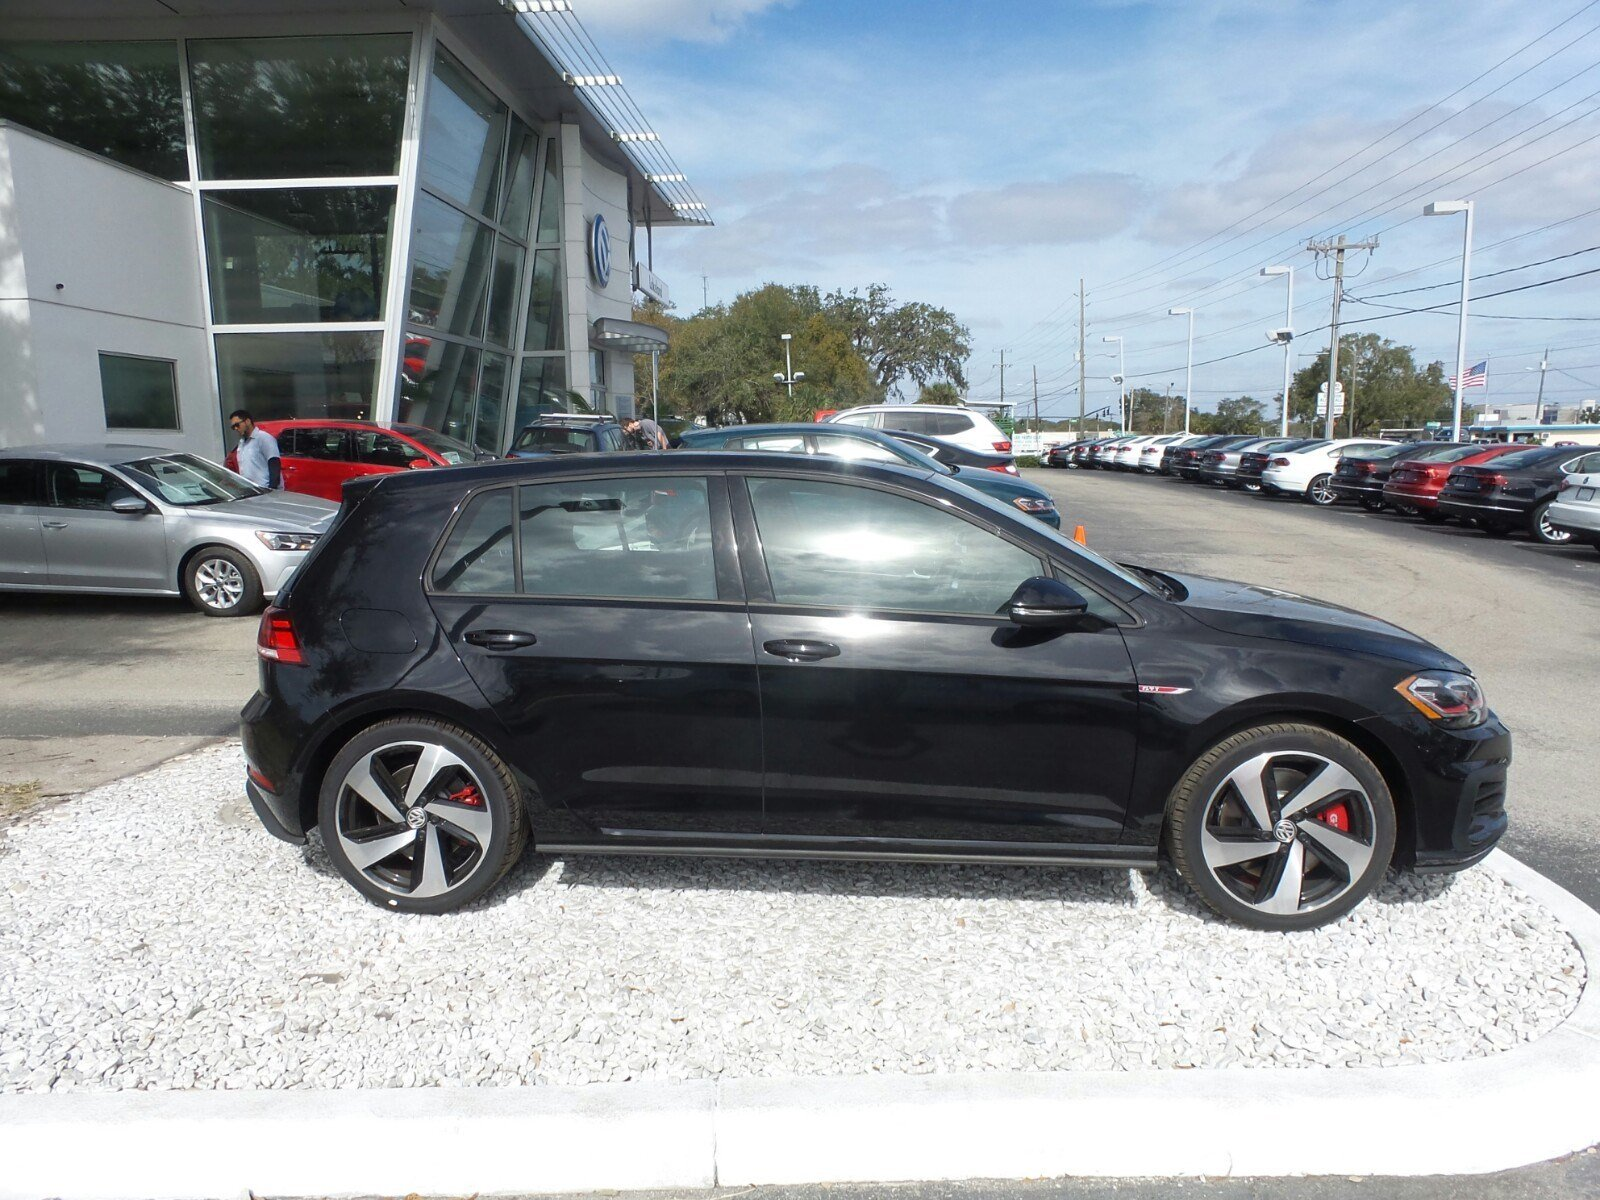 New 2018 Volkswagen Golf GTI 2 0T SE Hatchback in Lakeland JM